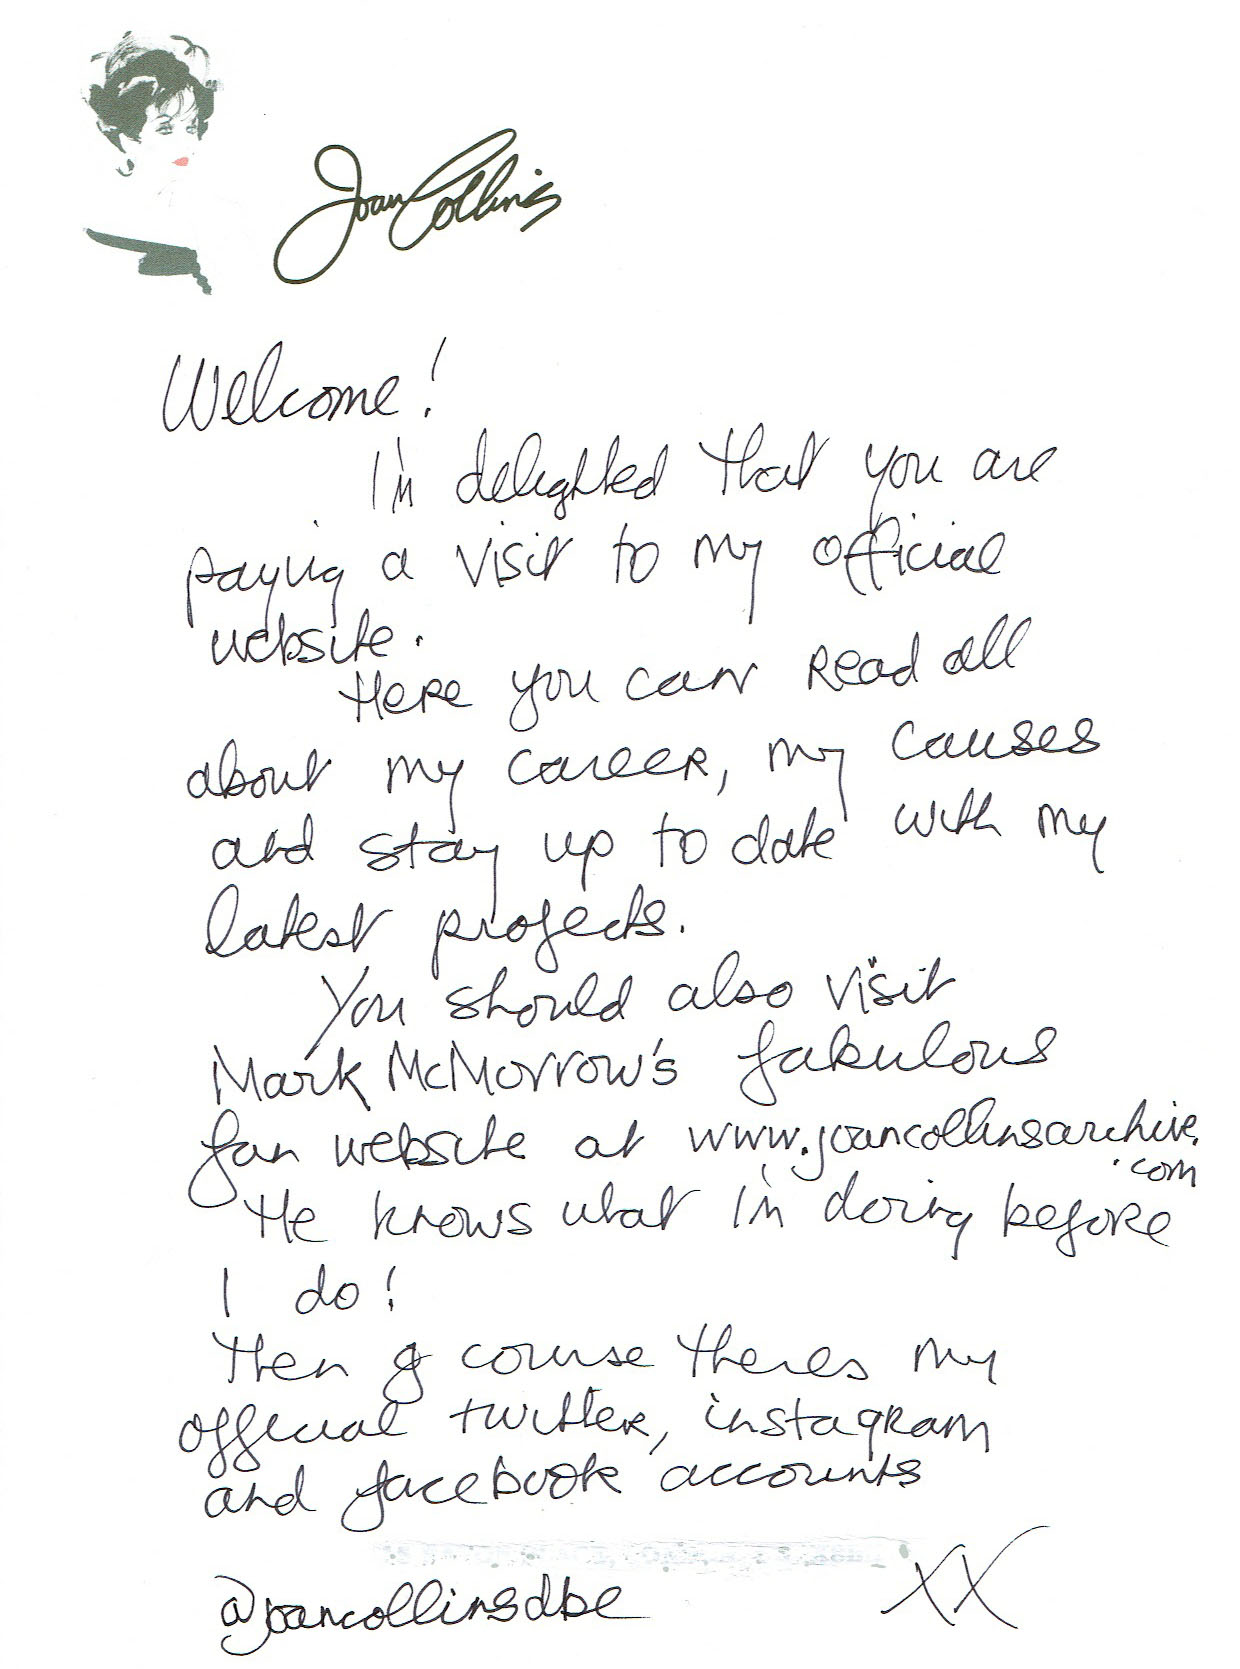 Joan website welcome letter